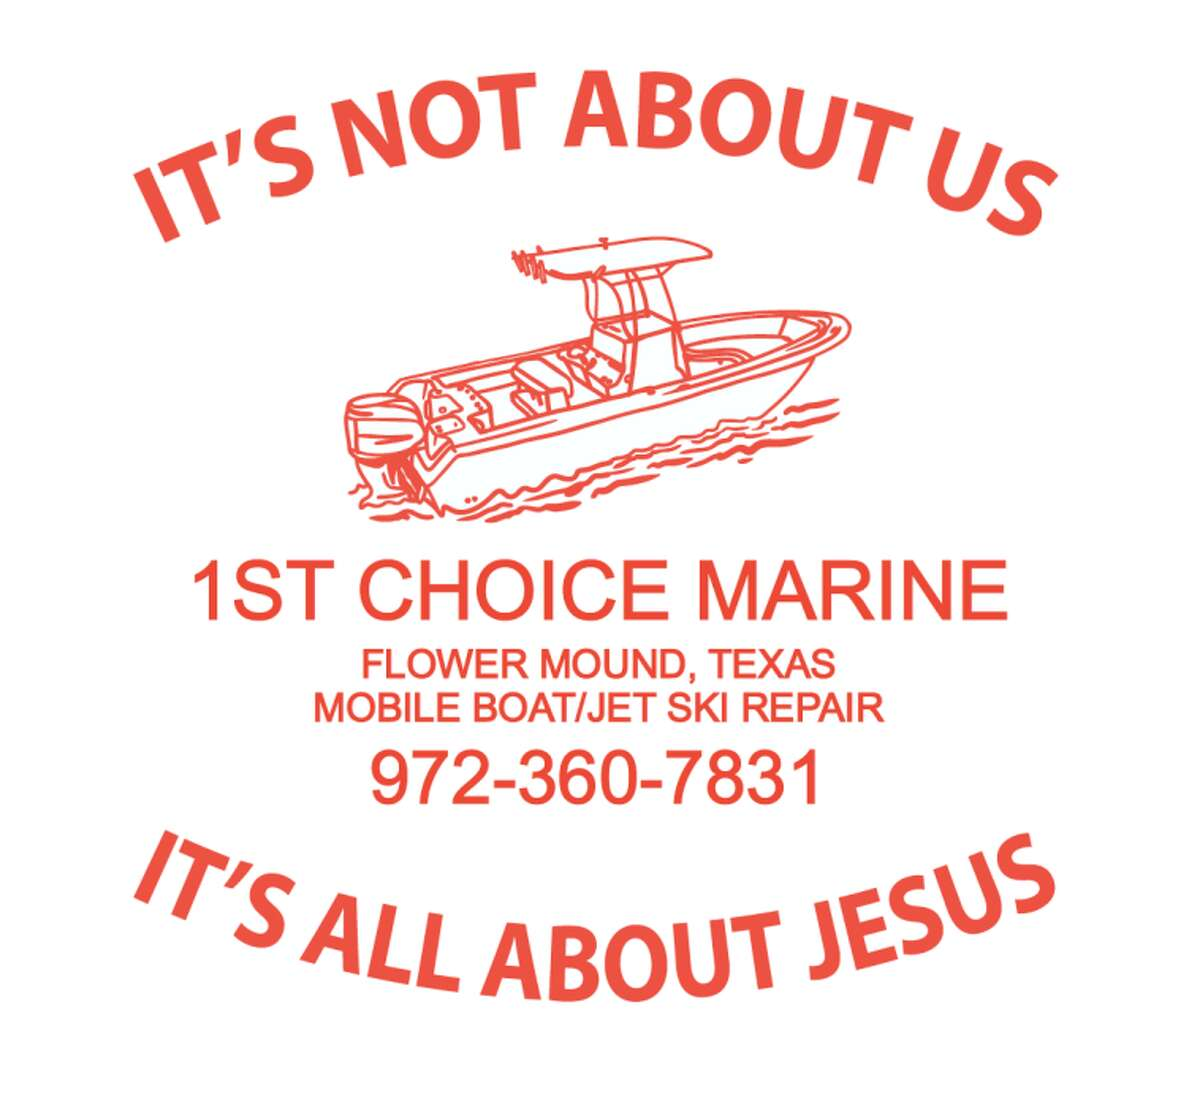 A Texas high school was recently threatened with legal action after refusing to accept a company's religious logo on their fishing team's jersey. Click through to see companies that are intensely religious.